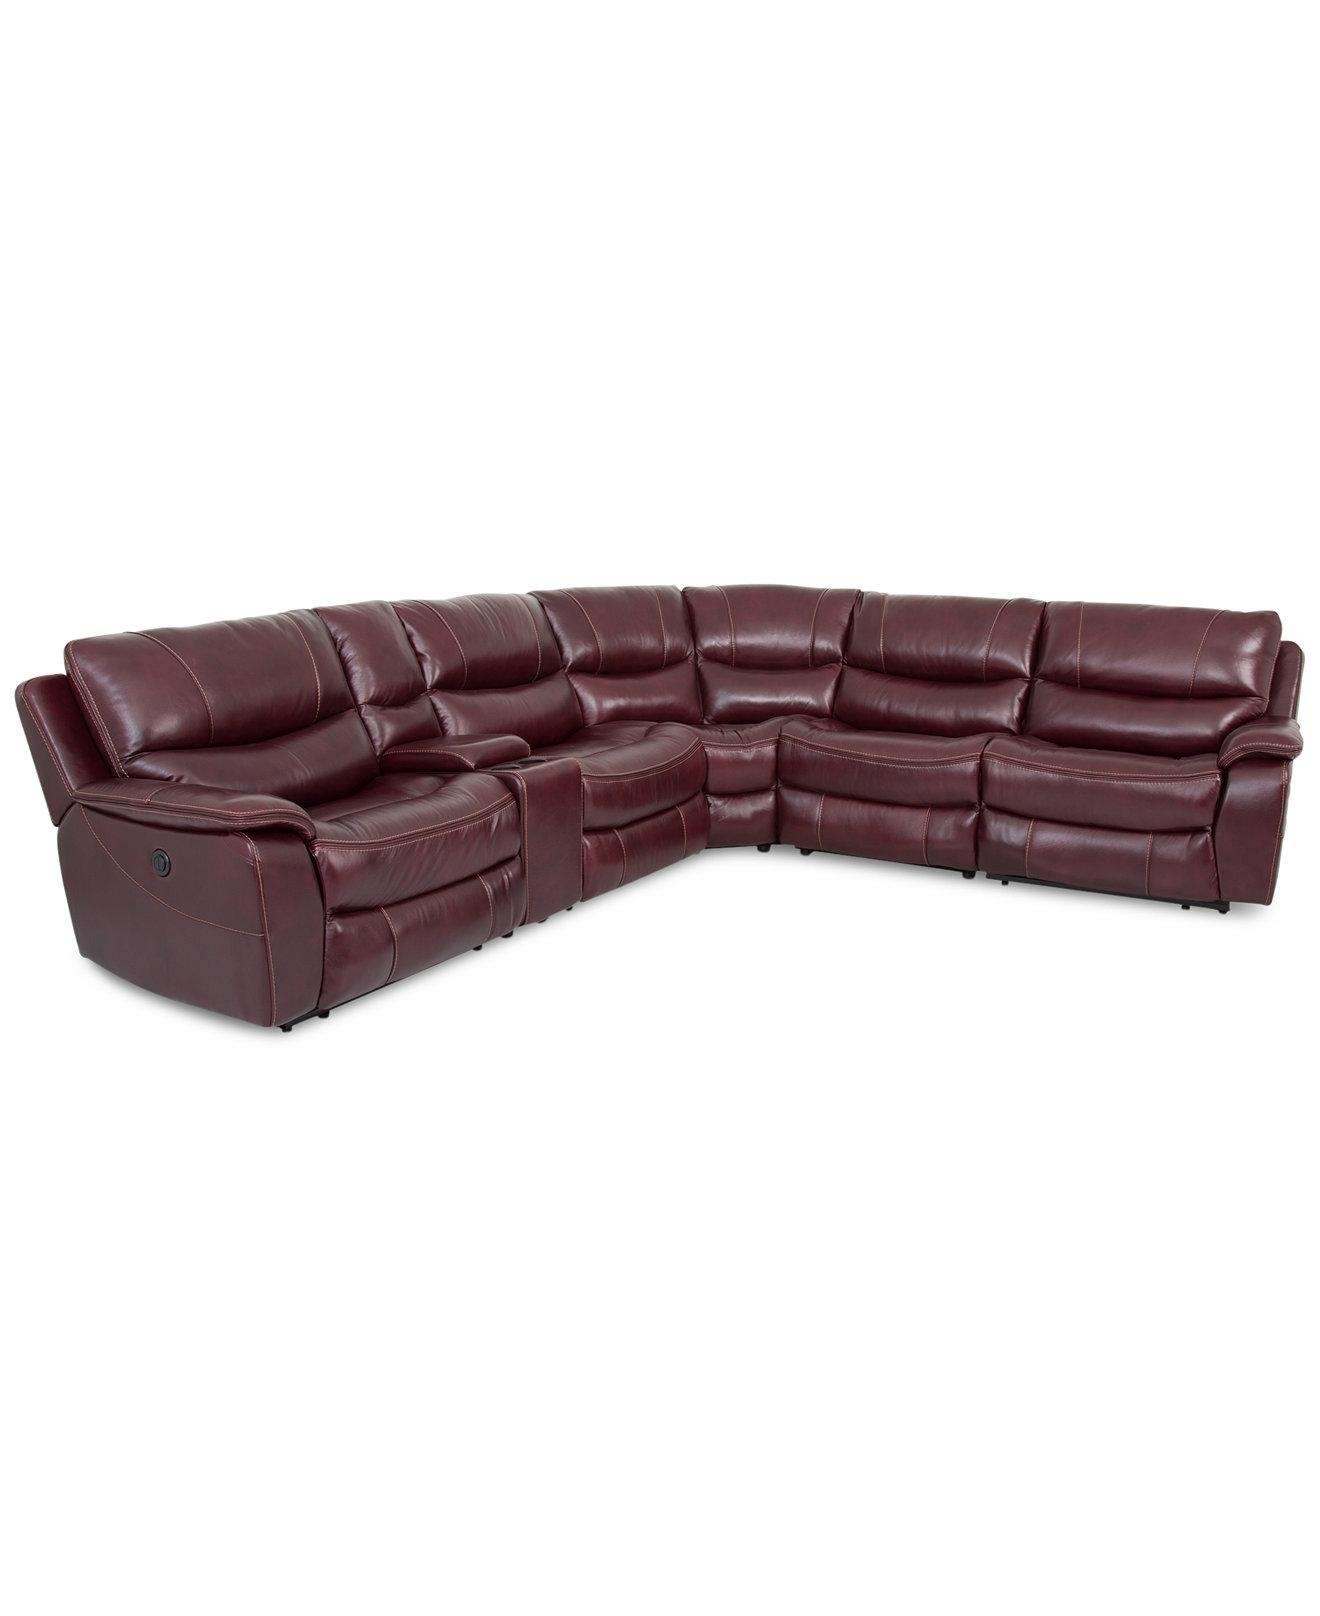 Sofas Center : Impressive Macys Leather Sofa Image Ideas Sofas For Pertaining To Macys Leather Sofas Sectionals (Image 12 of 20)